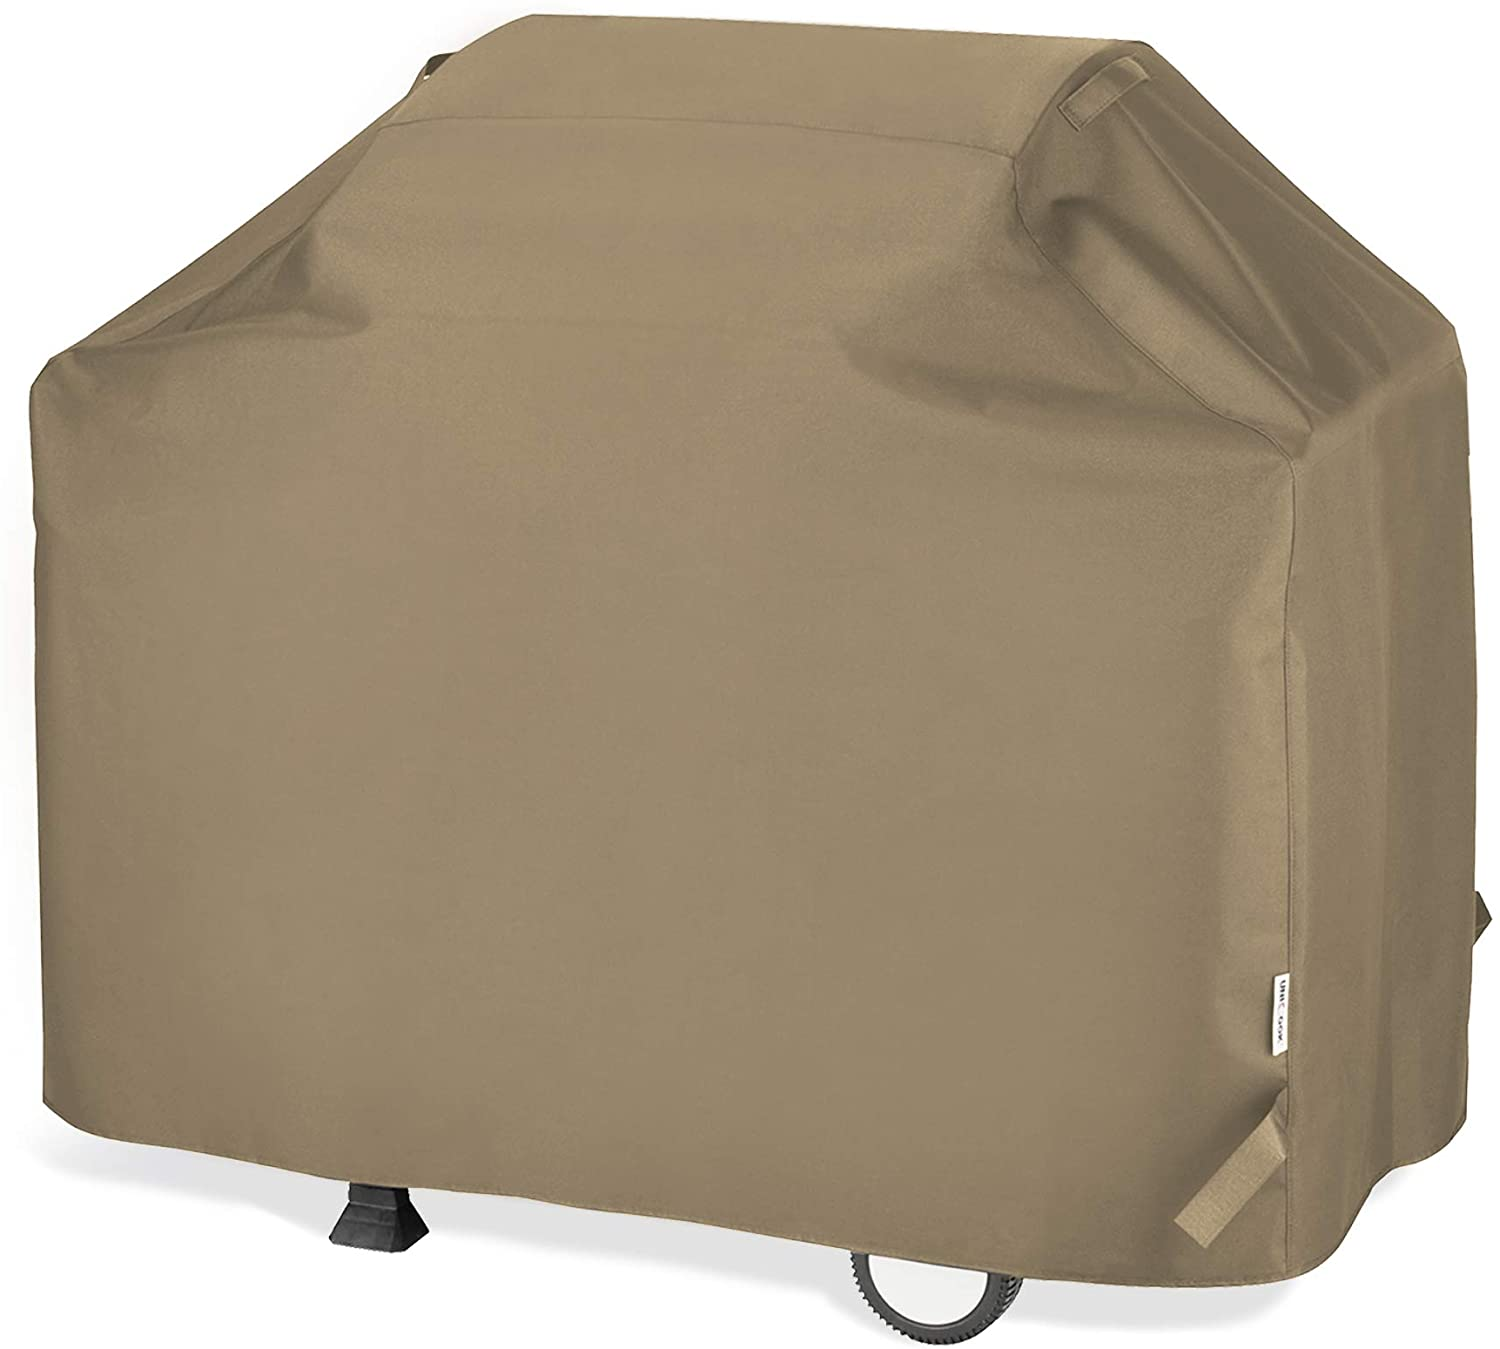 Unicook BBQ Grill Cover